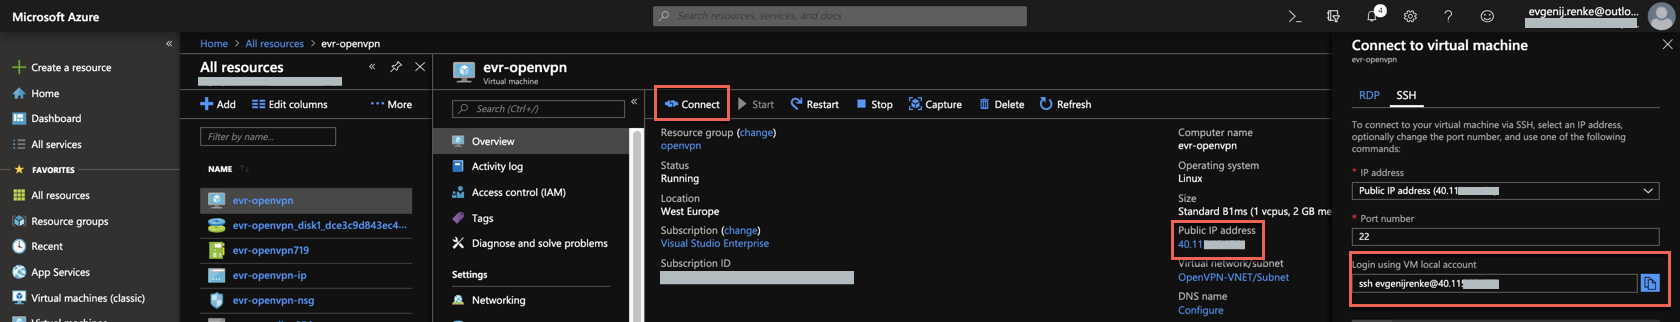 Configure OpenVPN Access Server on Azure - Evgenij Renke